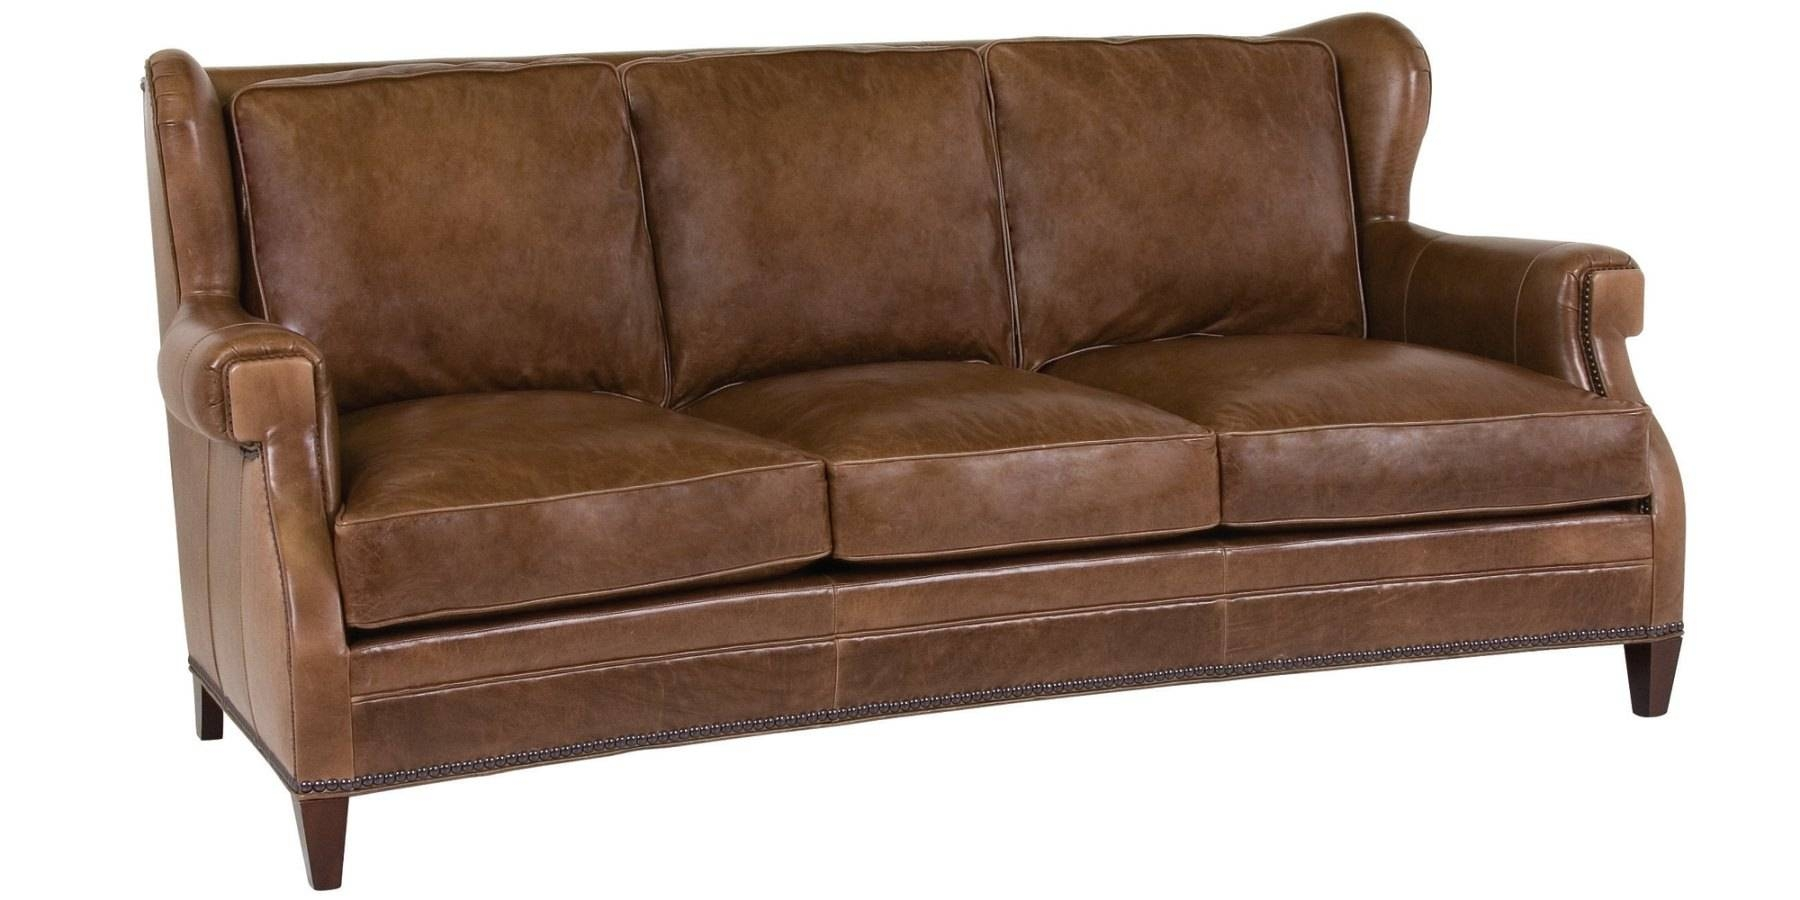 Leather Furniture | Club Furniture pertaining to Sofas With High Backs (Image 14 of 30)